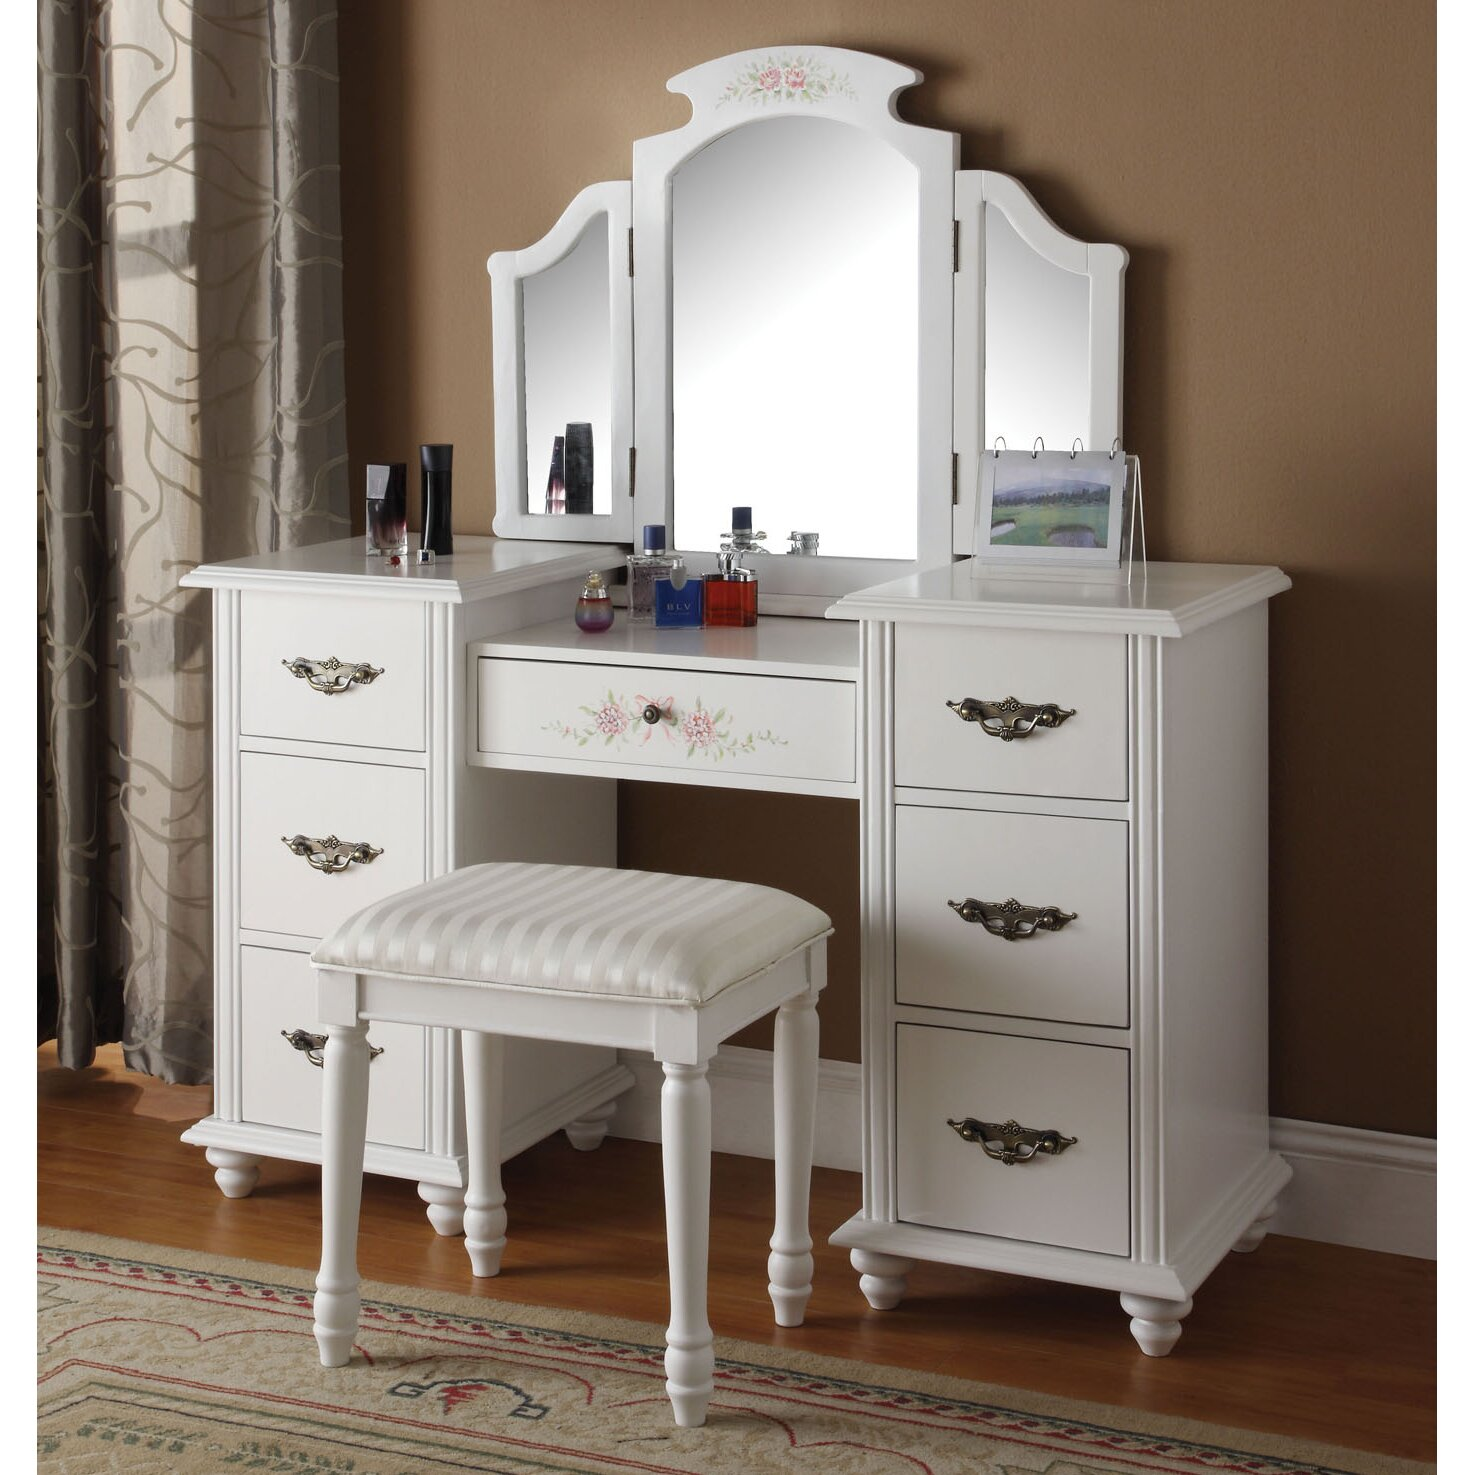 Infini Furnishings Makeup Vanity Set with Mirror. Infini Furnishings Makeup Vanity Set with Mirror  amp  Reviews   Wayfair